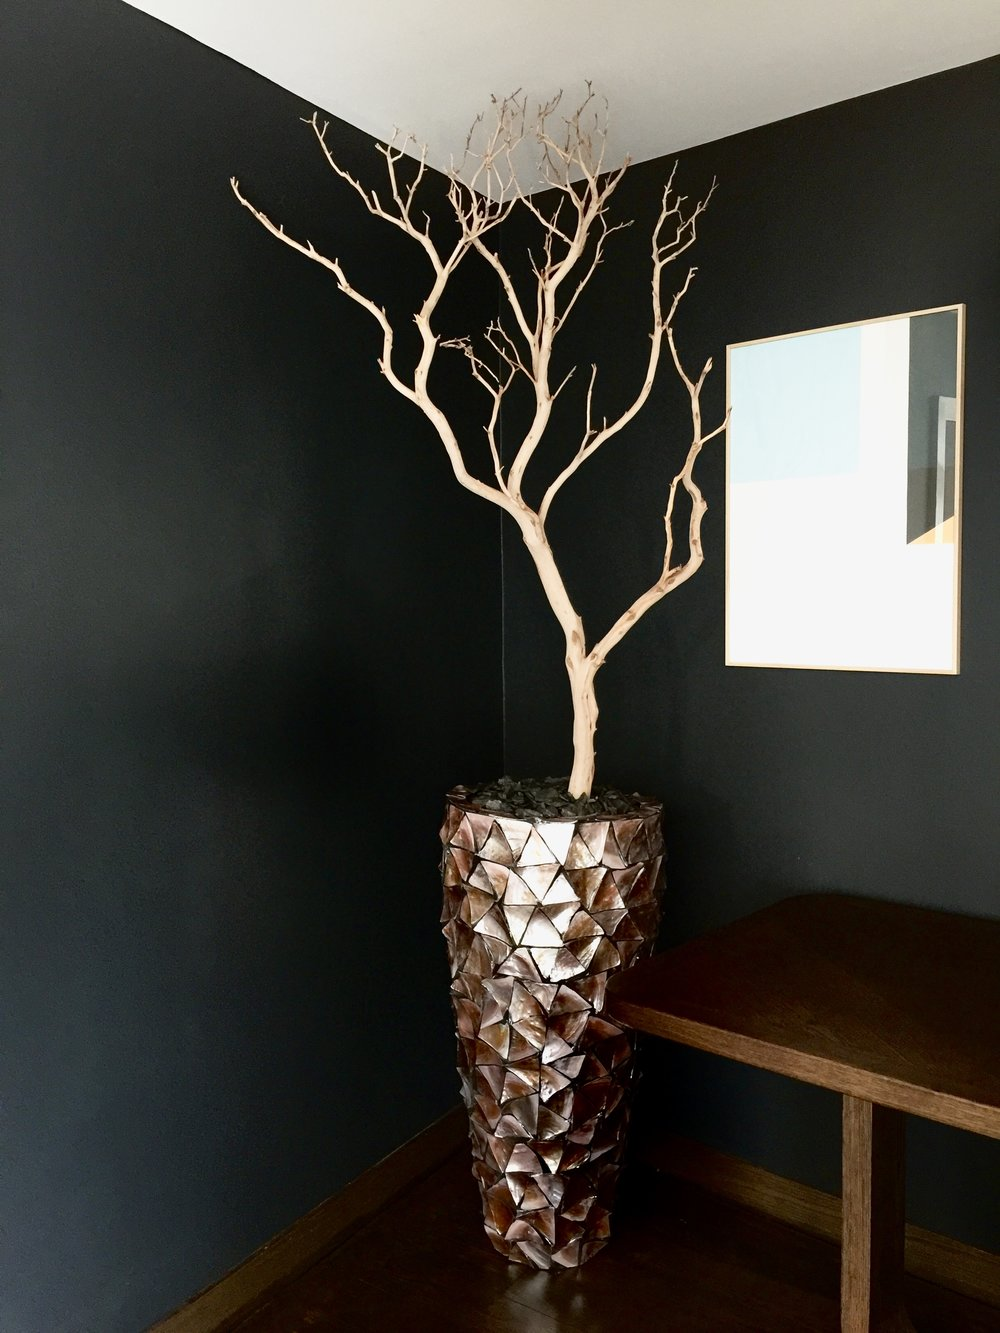 A stunning Shell Planter complete with Manzanita Branch. Installed in a Bournemouth Restaurant private dining area.